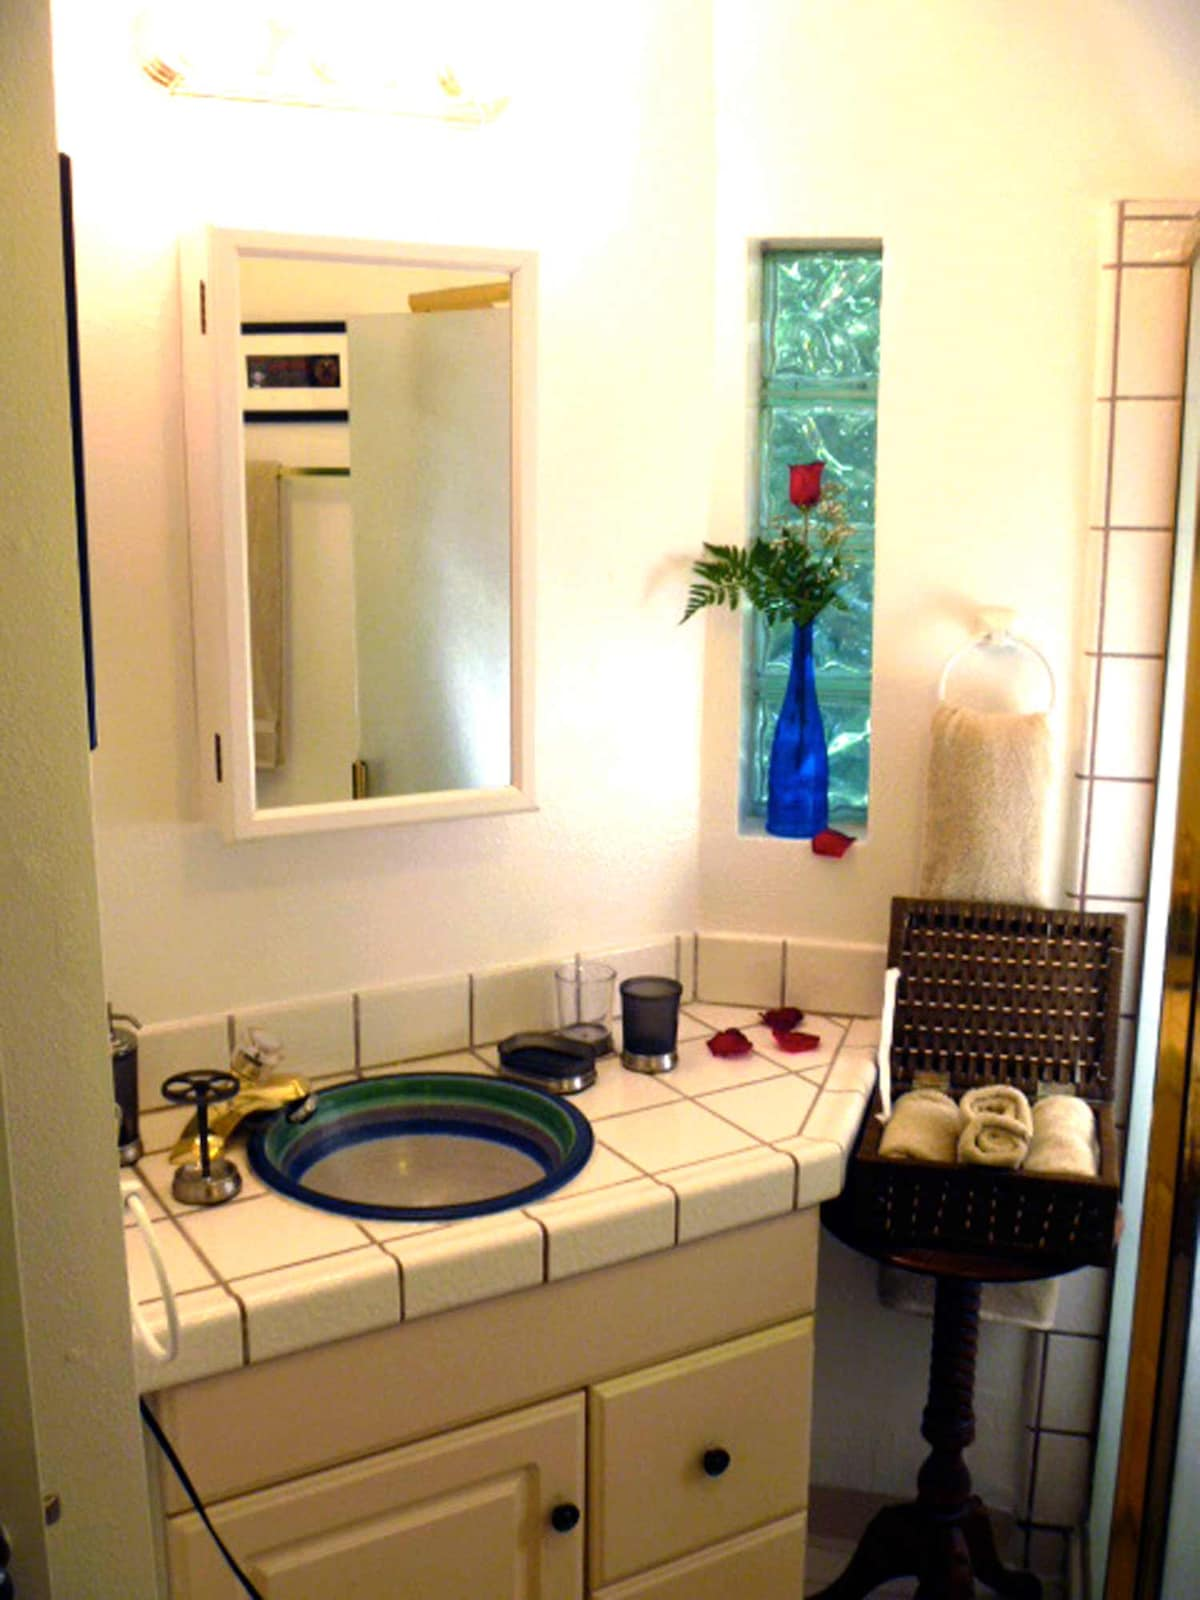 The bathroom is a bit dated, but it does have a hand-made sink and a washer dryer.